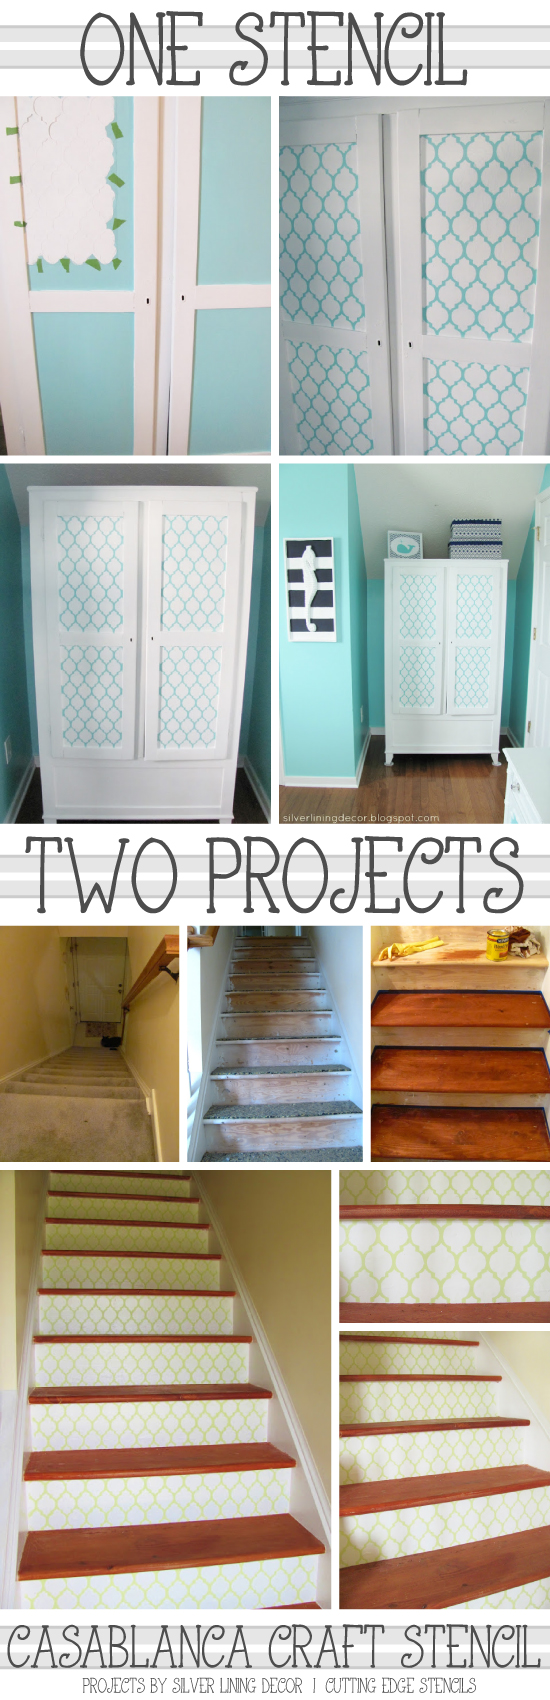 See how you can use one reusable casablanca craft stencil for many projects in your home! http://www.cuttingedgestencils.com/craft-furniture-stencil.html